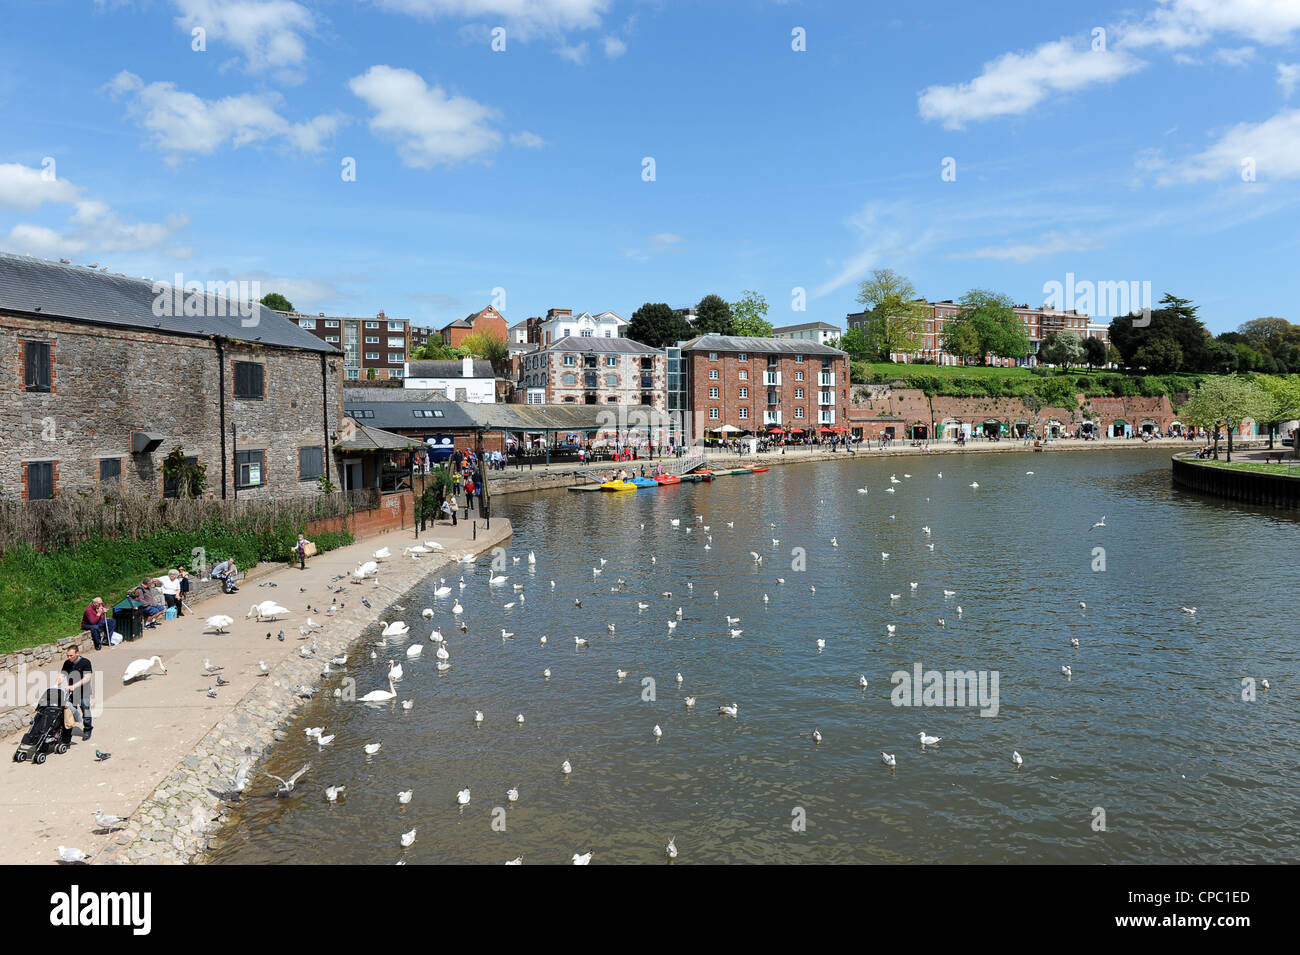 The River Exe at Exeter Quay, Exeter, Devon, UK - Stock Image